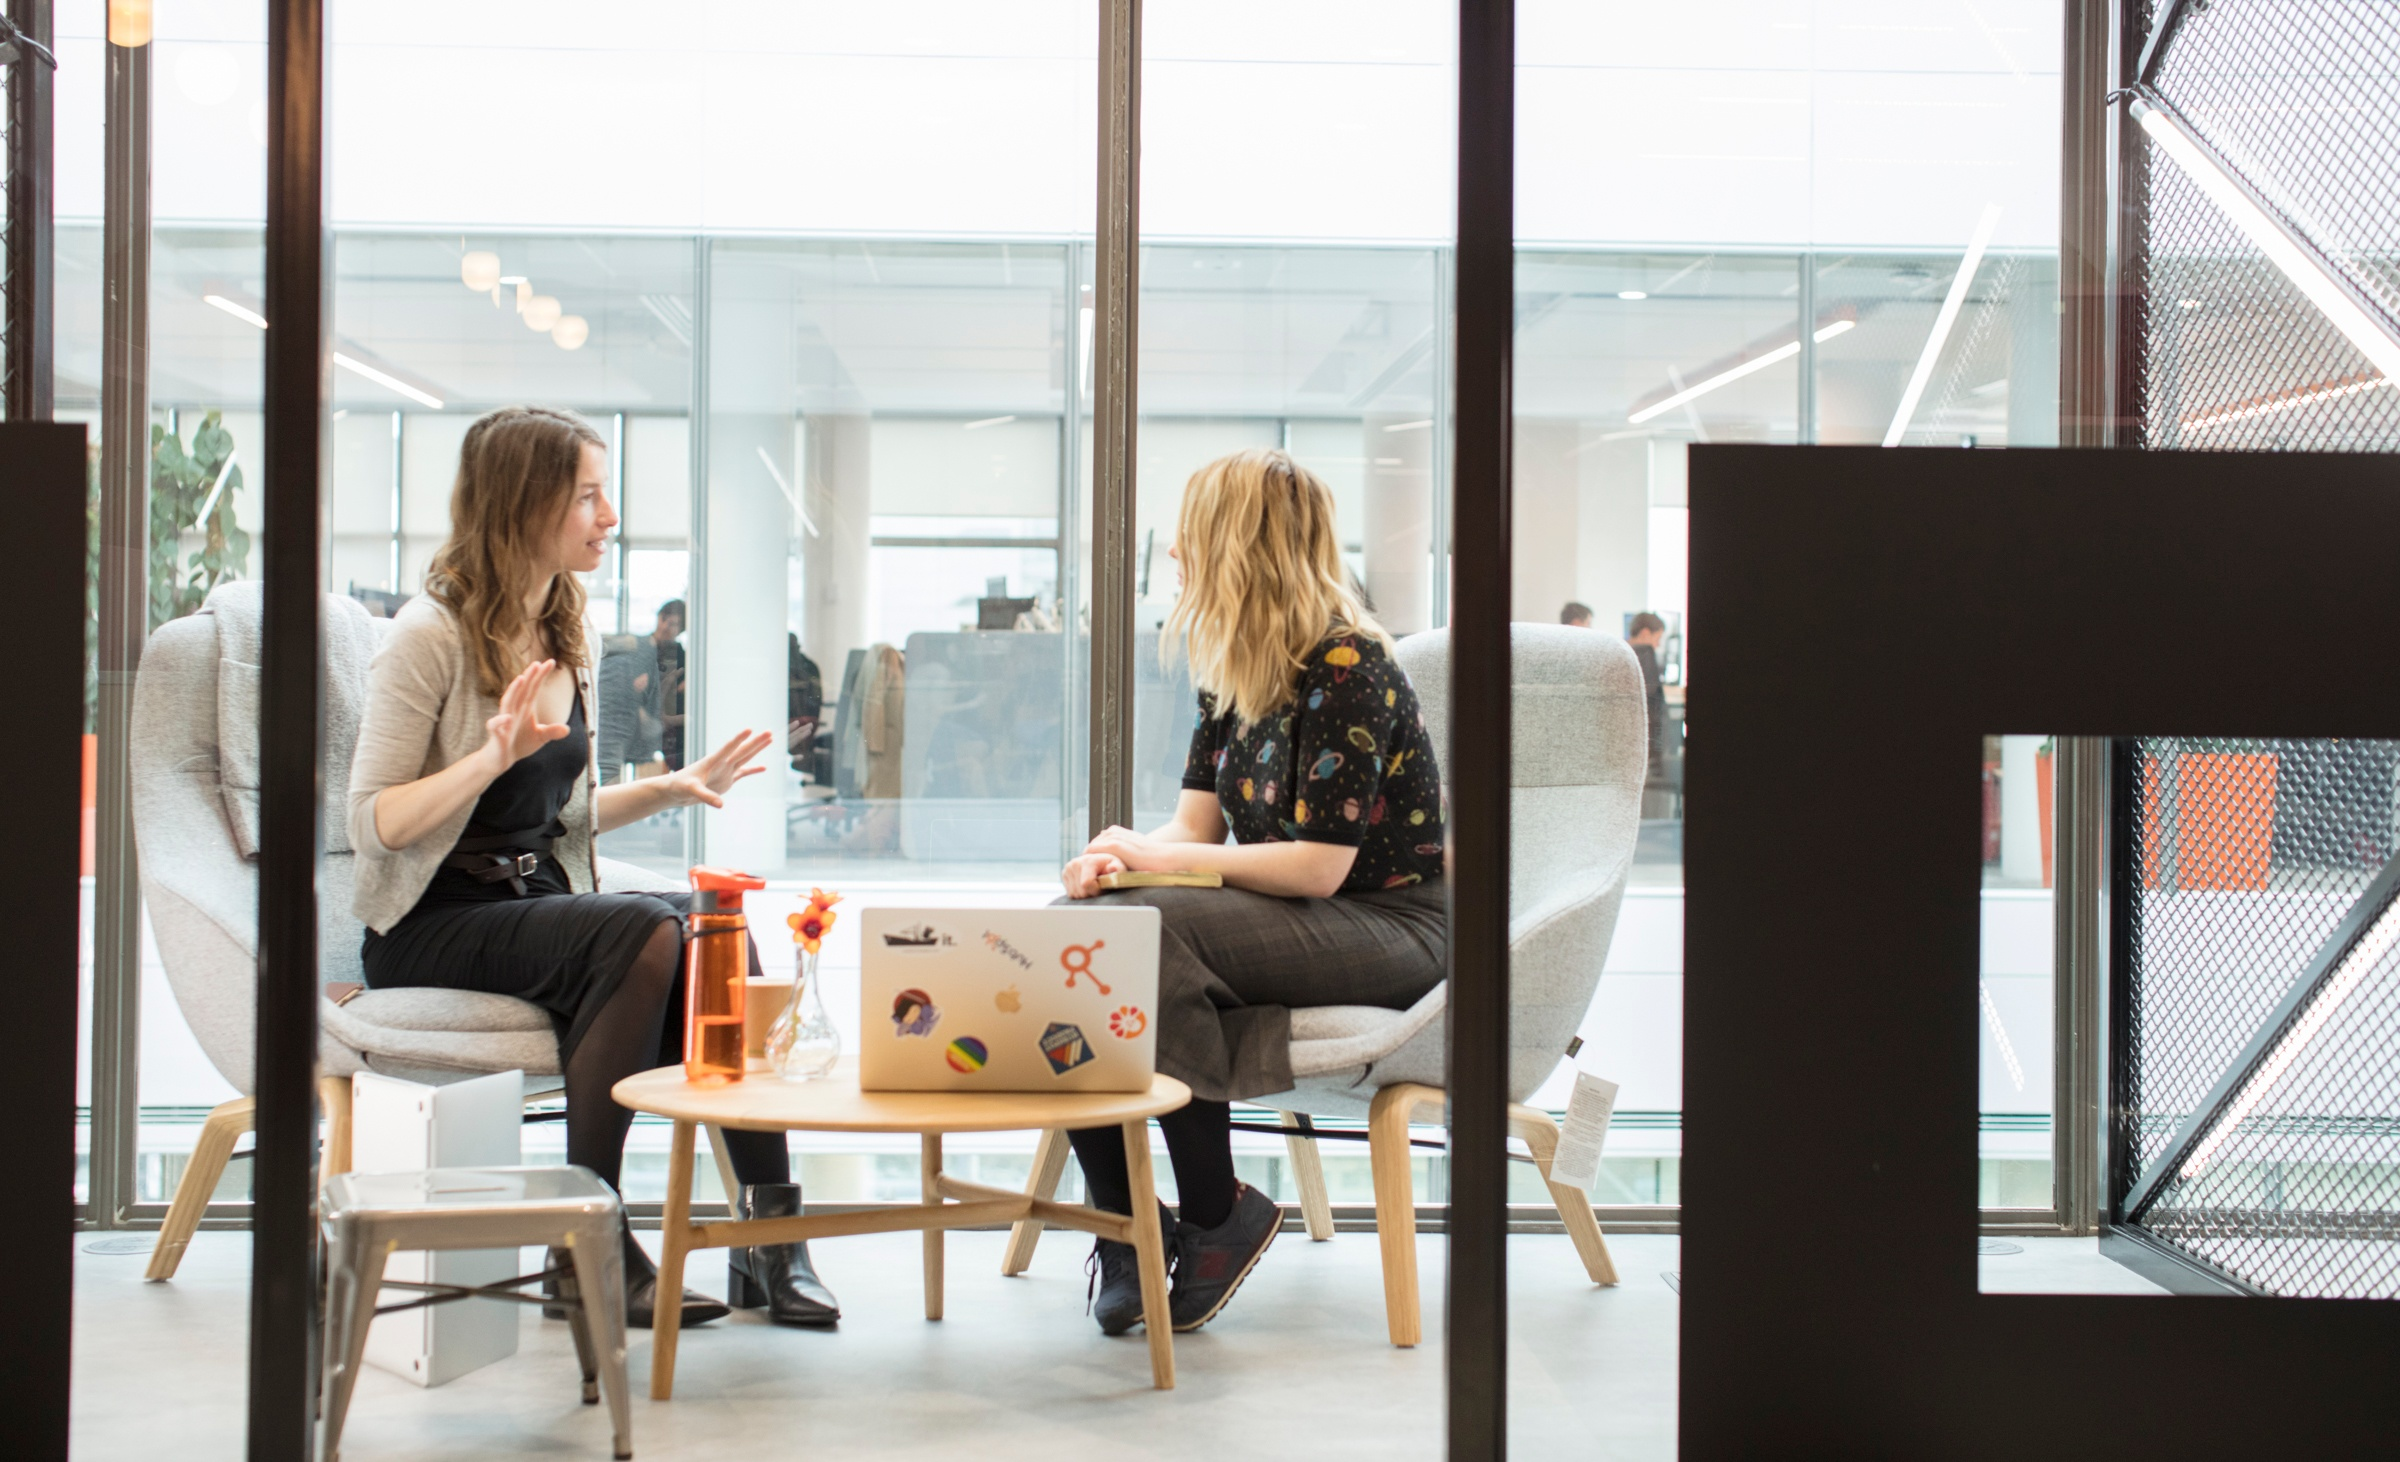 6 Ways to Make the Most of Your One-on-One Meeting